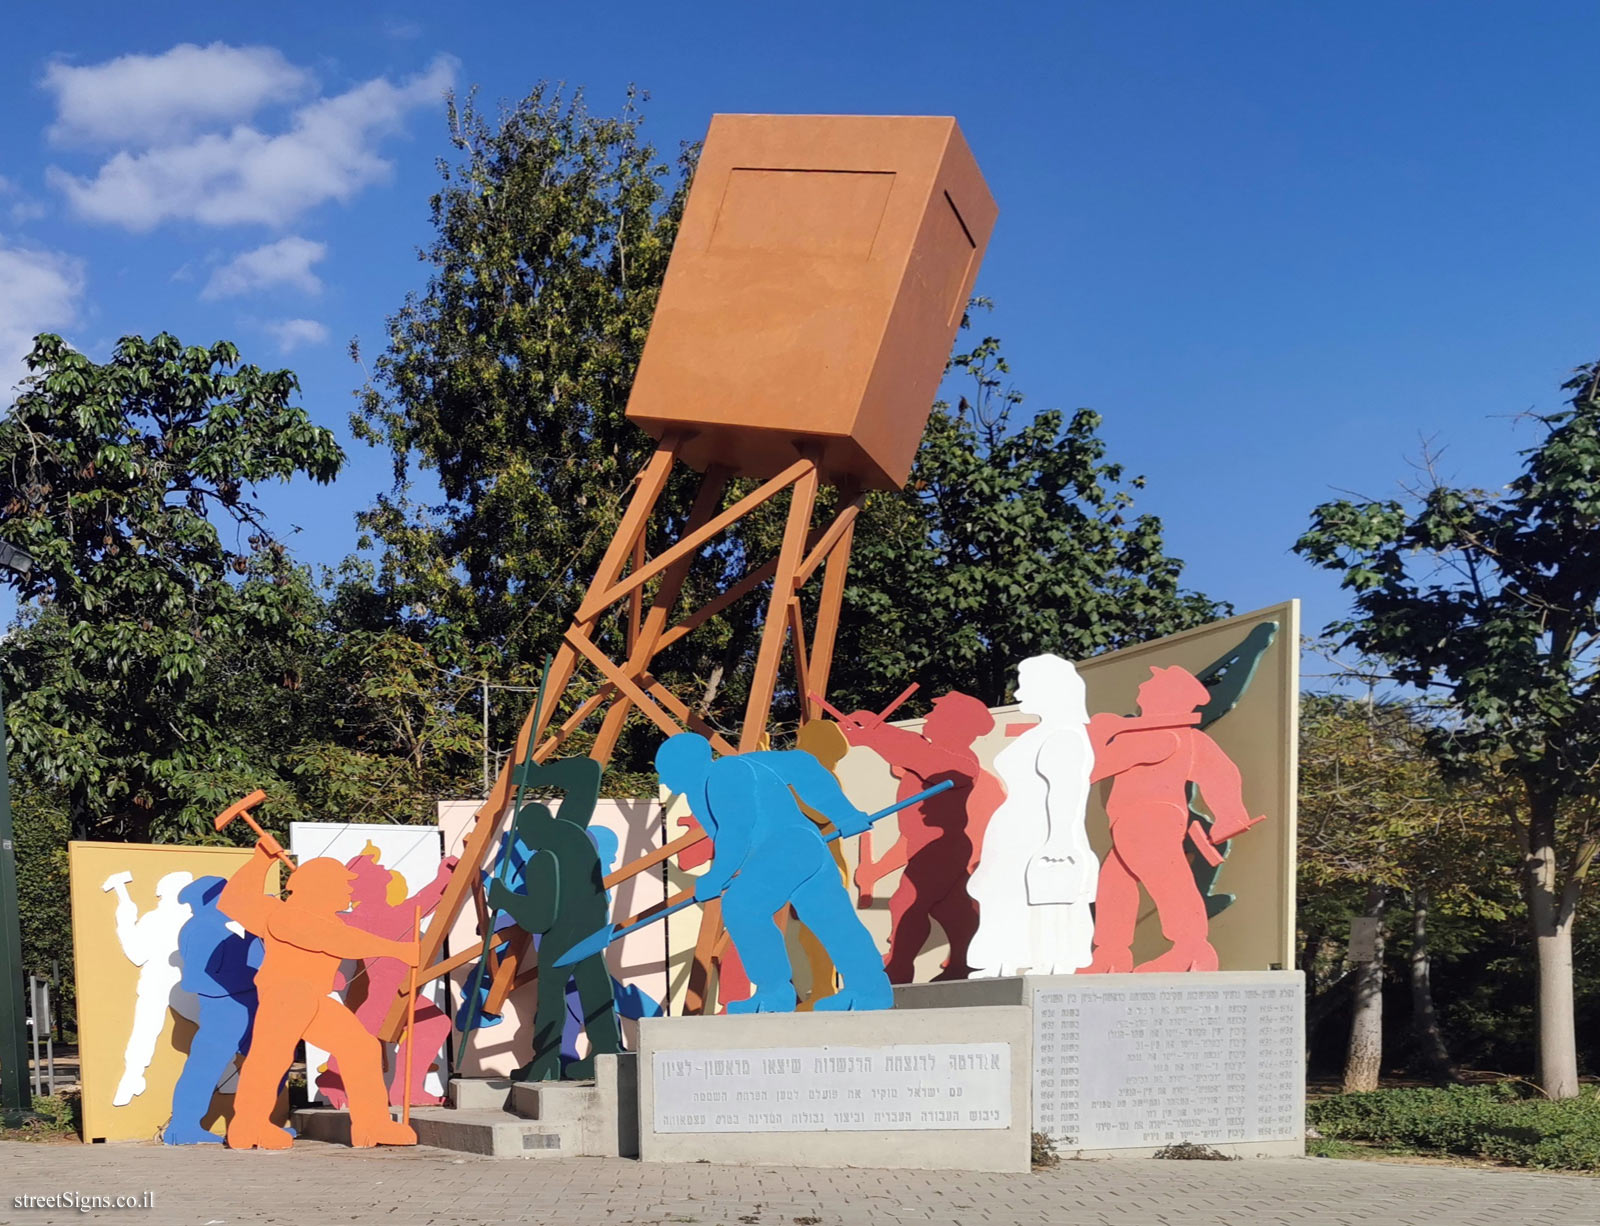 Rishon Lezion - a monument to commemorate the hachshara - Jerusalem St 65, Rishon LeTsiyon, Israel